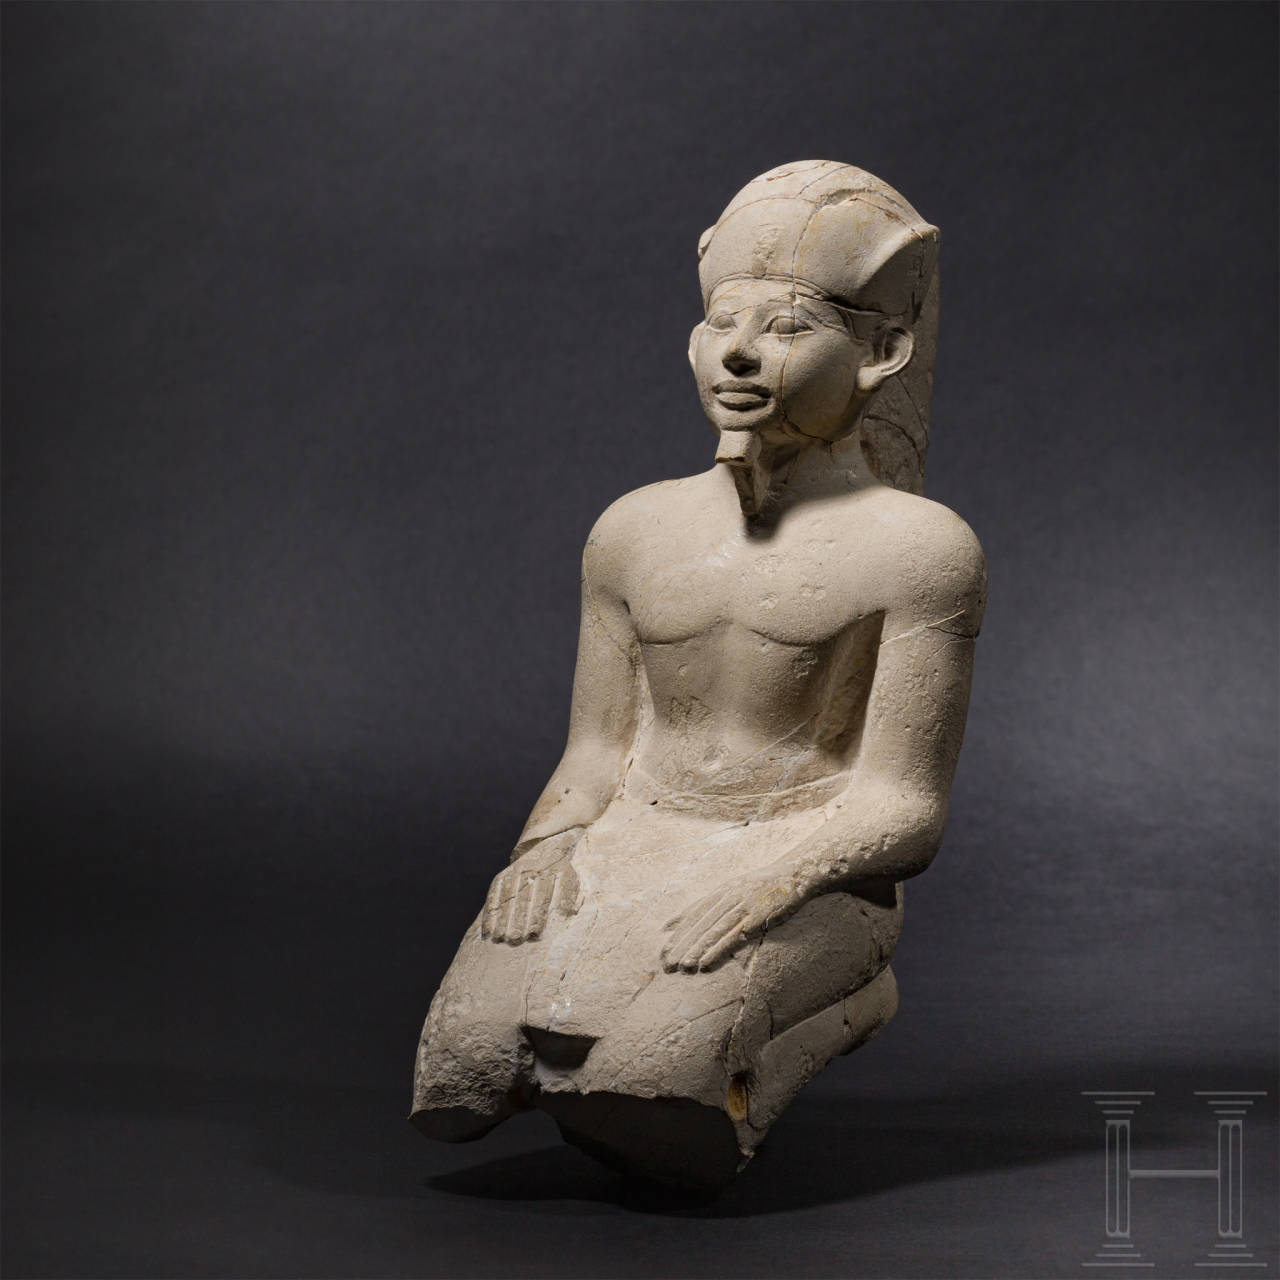 A kneeling limestone statue of a pharao, Late Period - Early Ptolemaic Period, 7th - 3rd century B.C.